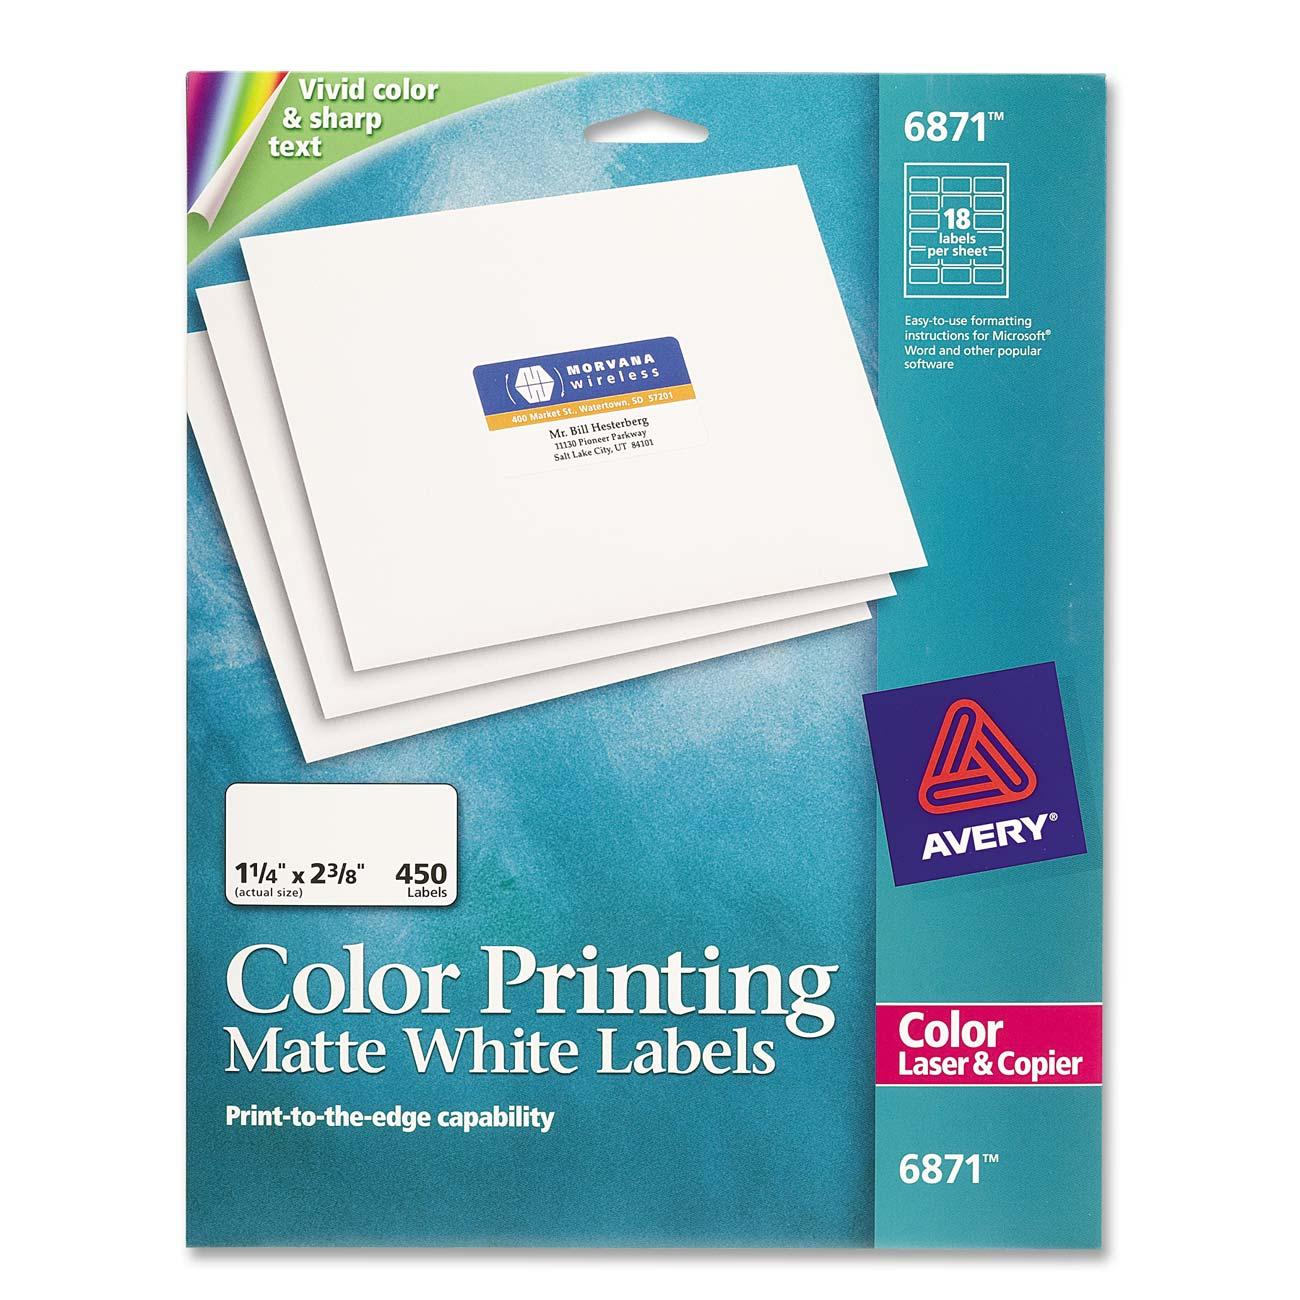 avery dennison labels templates - color printing label avery dennison 6871 ave6871 labels